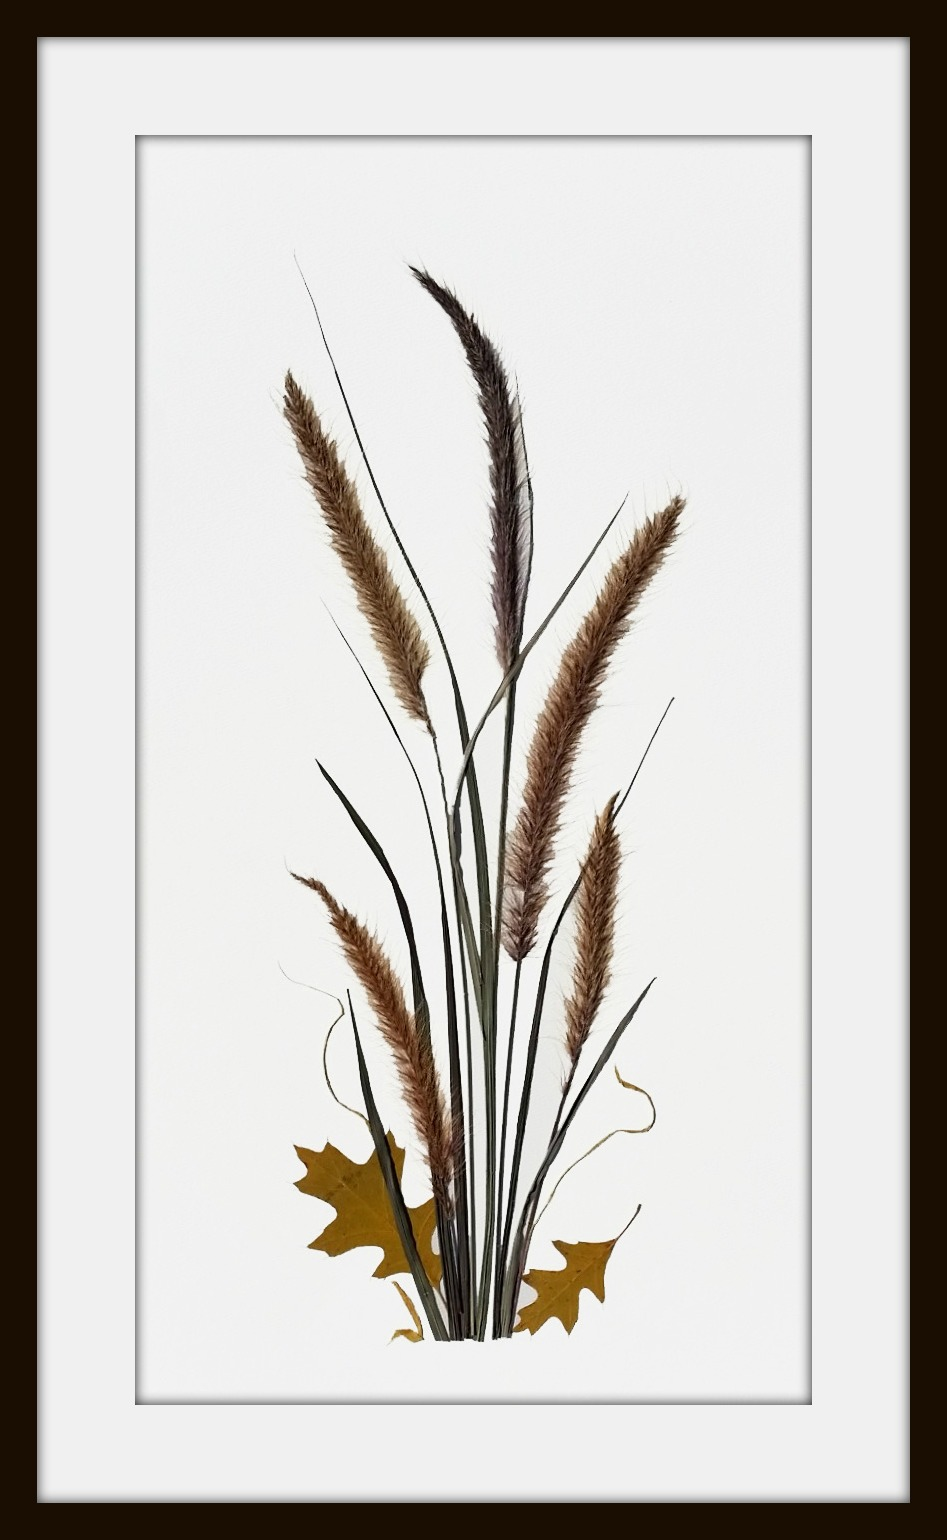 Grasses and oak leaves